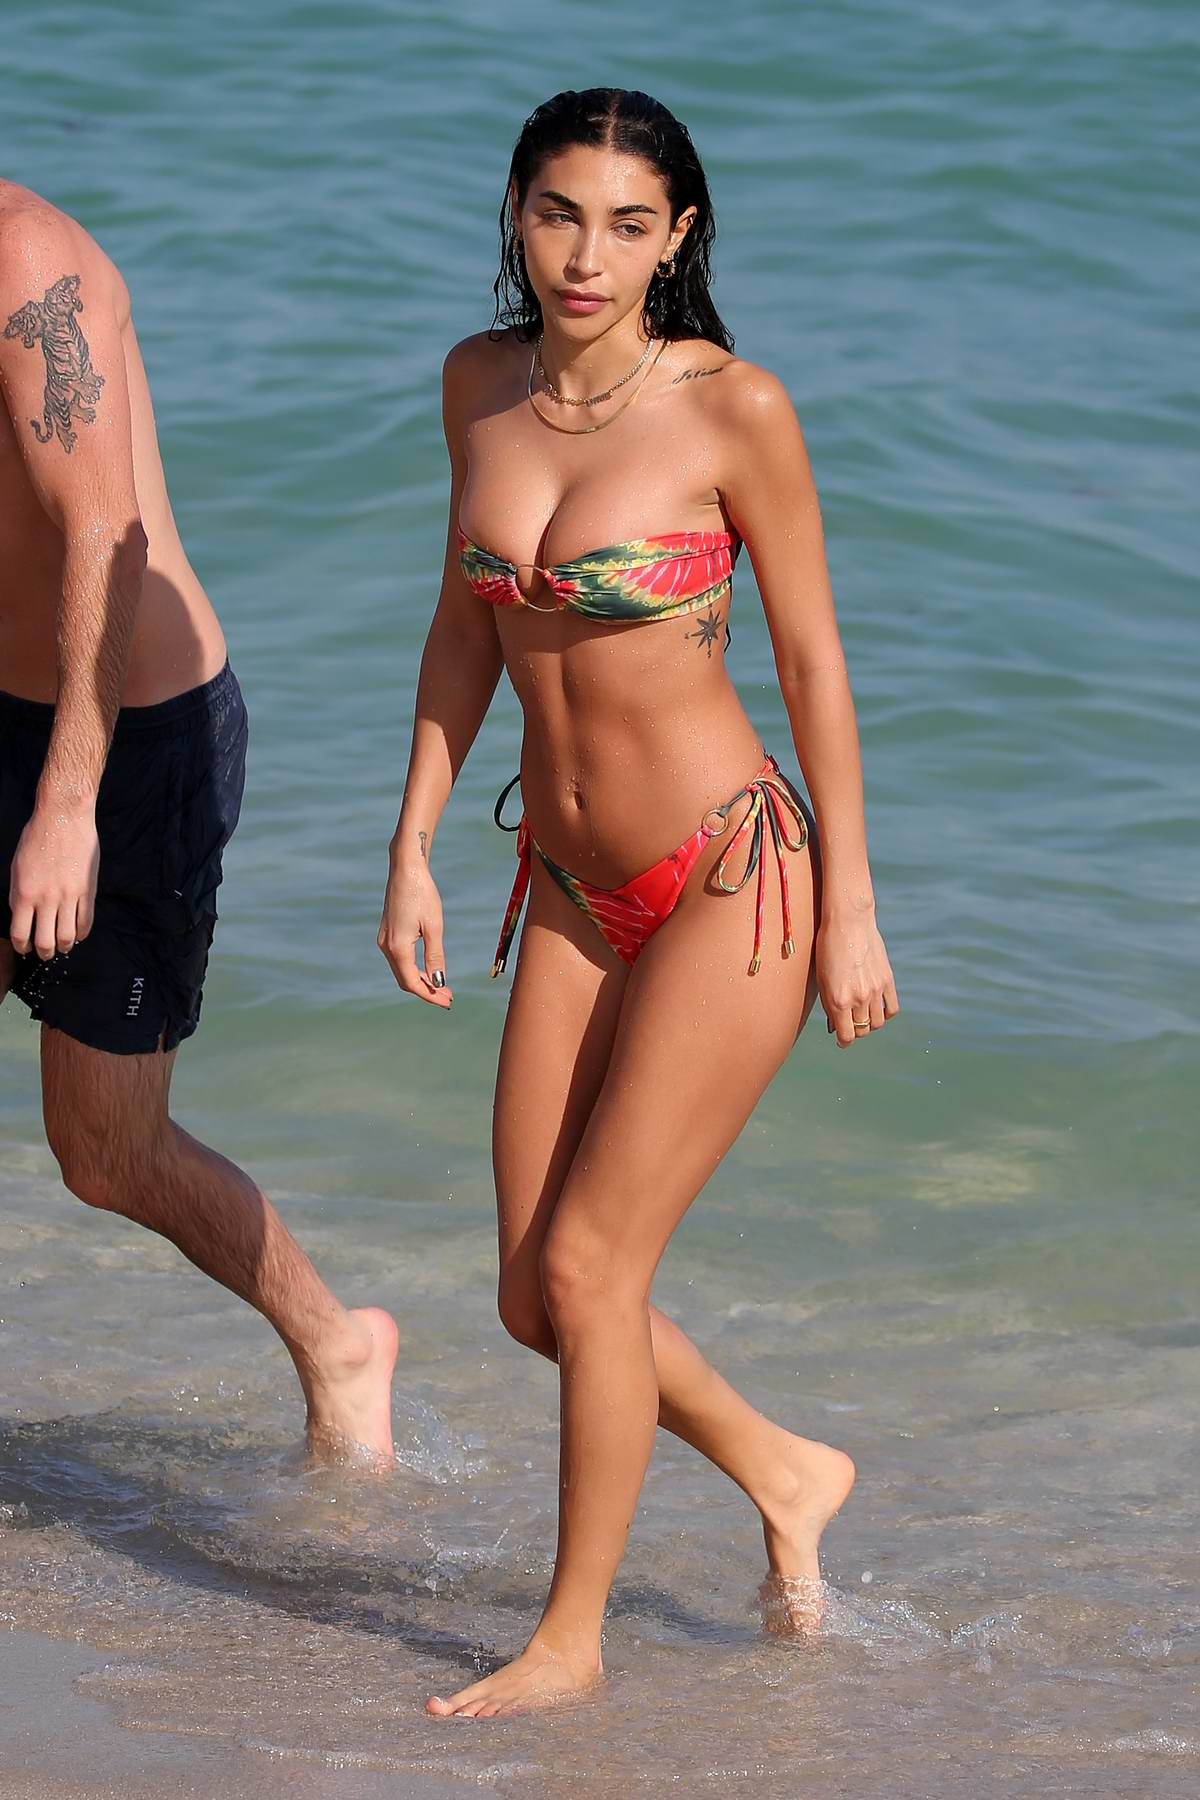 Chantel Jeffries slips into a colorful bikini while enjoying a relaxing beach day with boyfriend Andrew Taggart in Miami, Florida